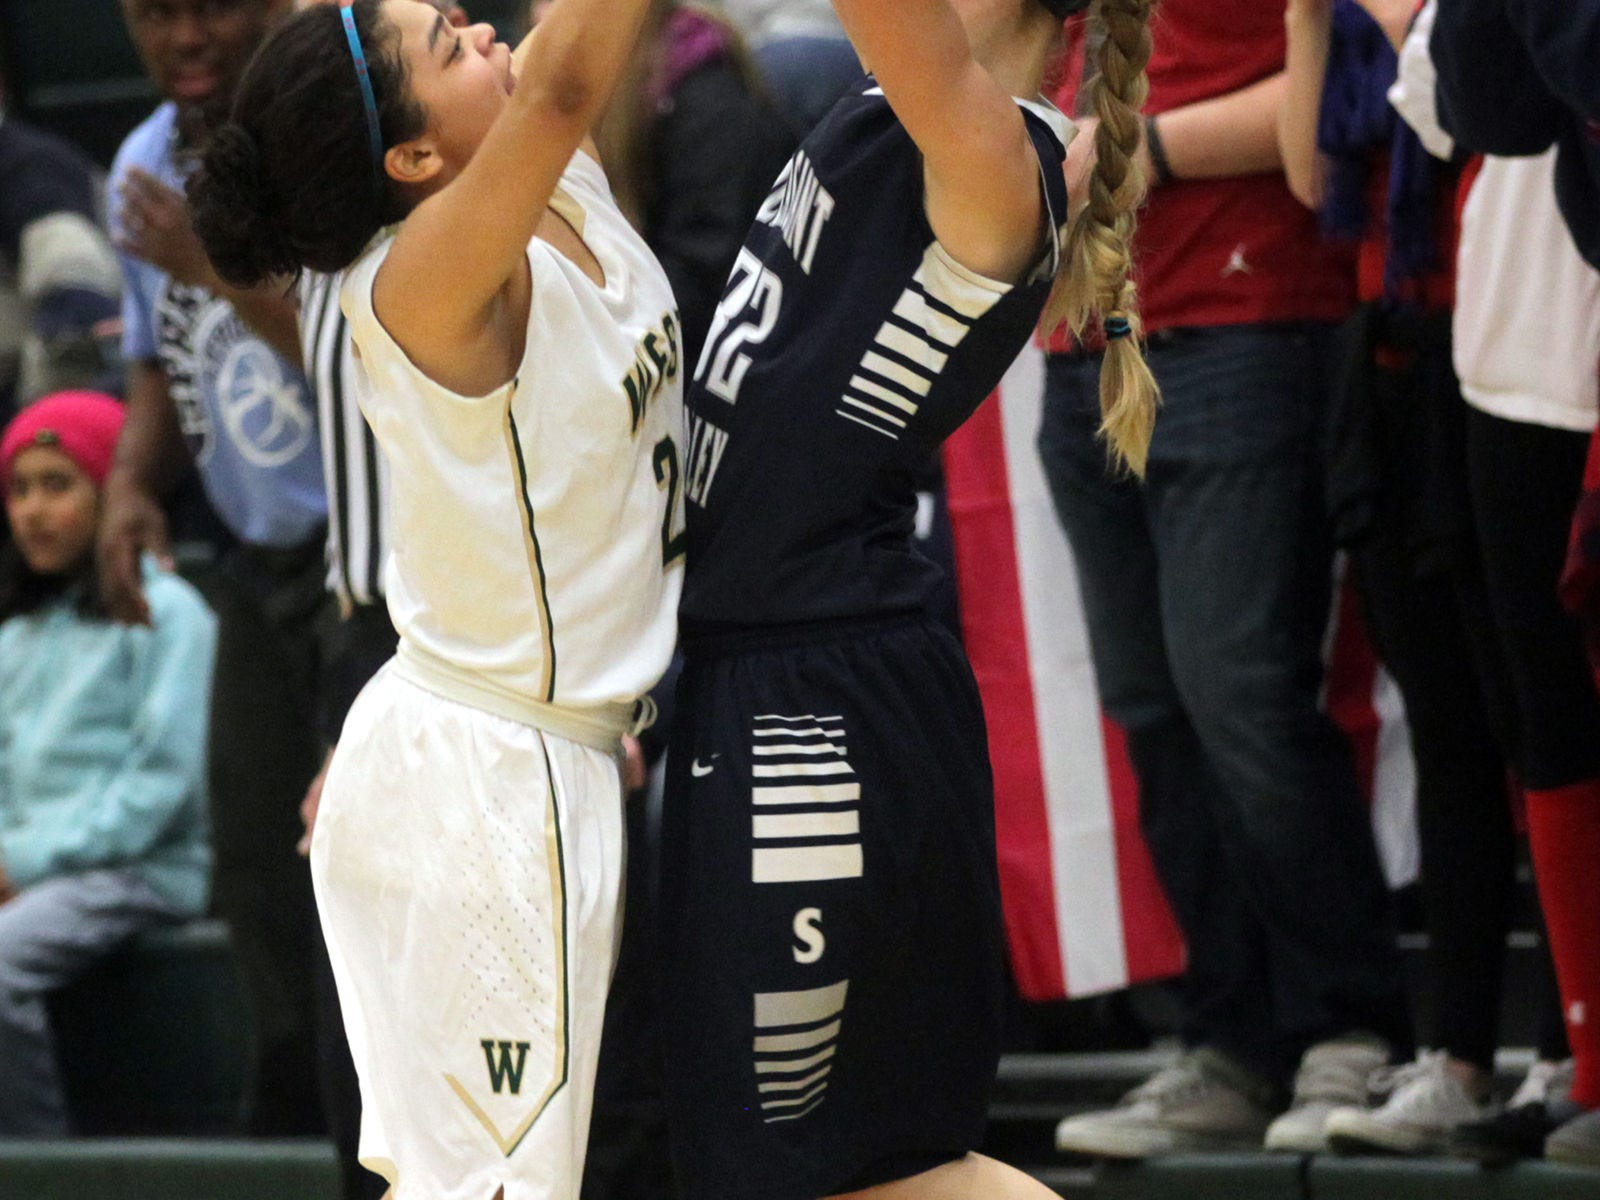 West High's Bella Lozano-Dobbs guards Pleasant Valley's Ellie Spelhaug during their Class 5A regional final on Tuesday, Feb. 24, 2015. West High won, 45-27, to advance to the state tournament. David Scrivner / Iowa City Press-Citizen